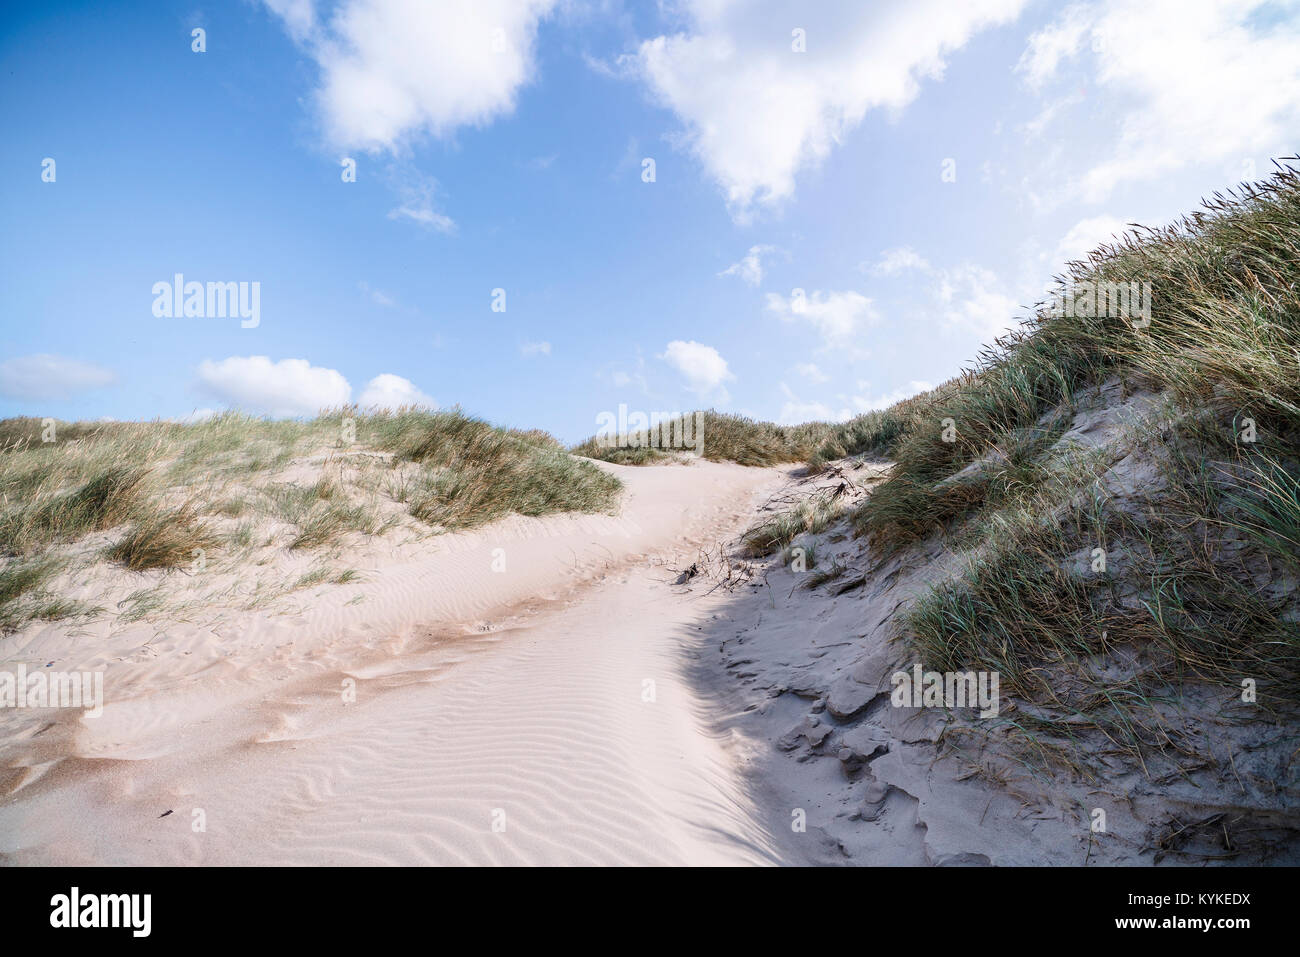 Trail on a Scandinavian beach with lyme grass in the summer under a blue sky with white clouds - Stock Image